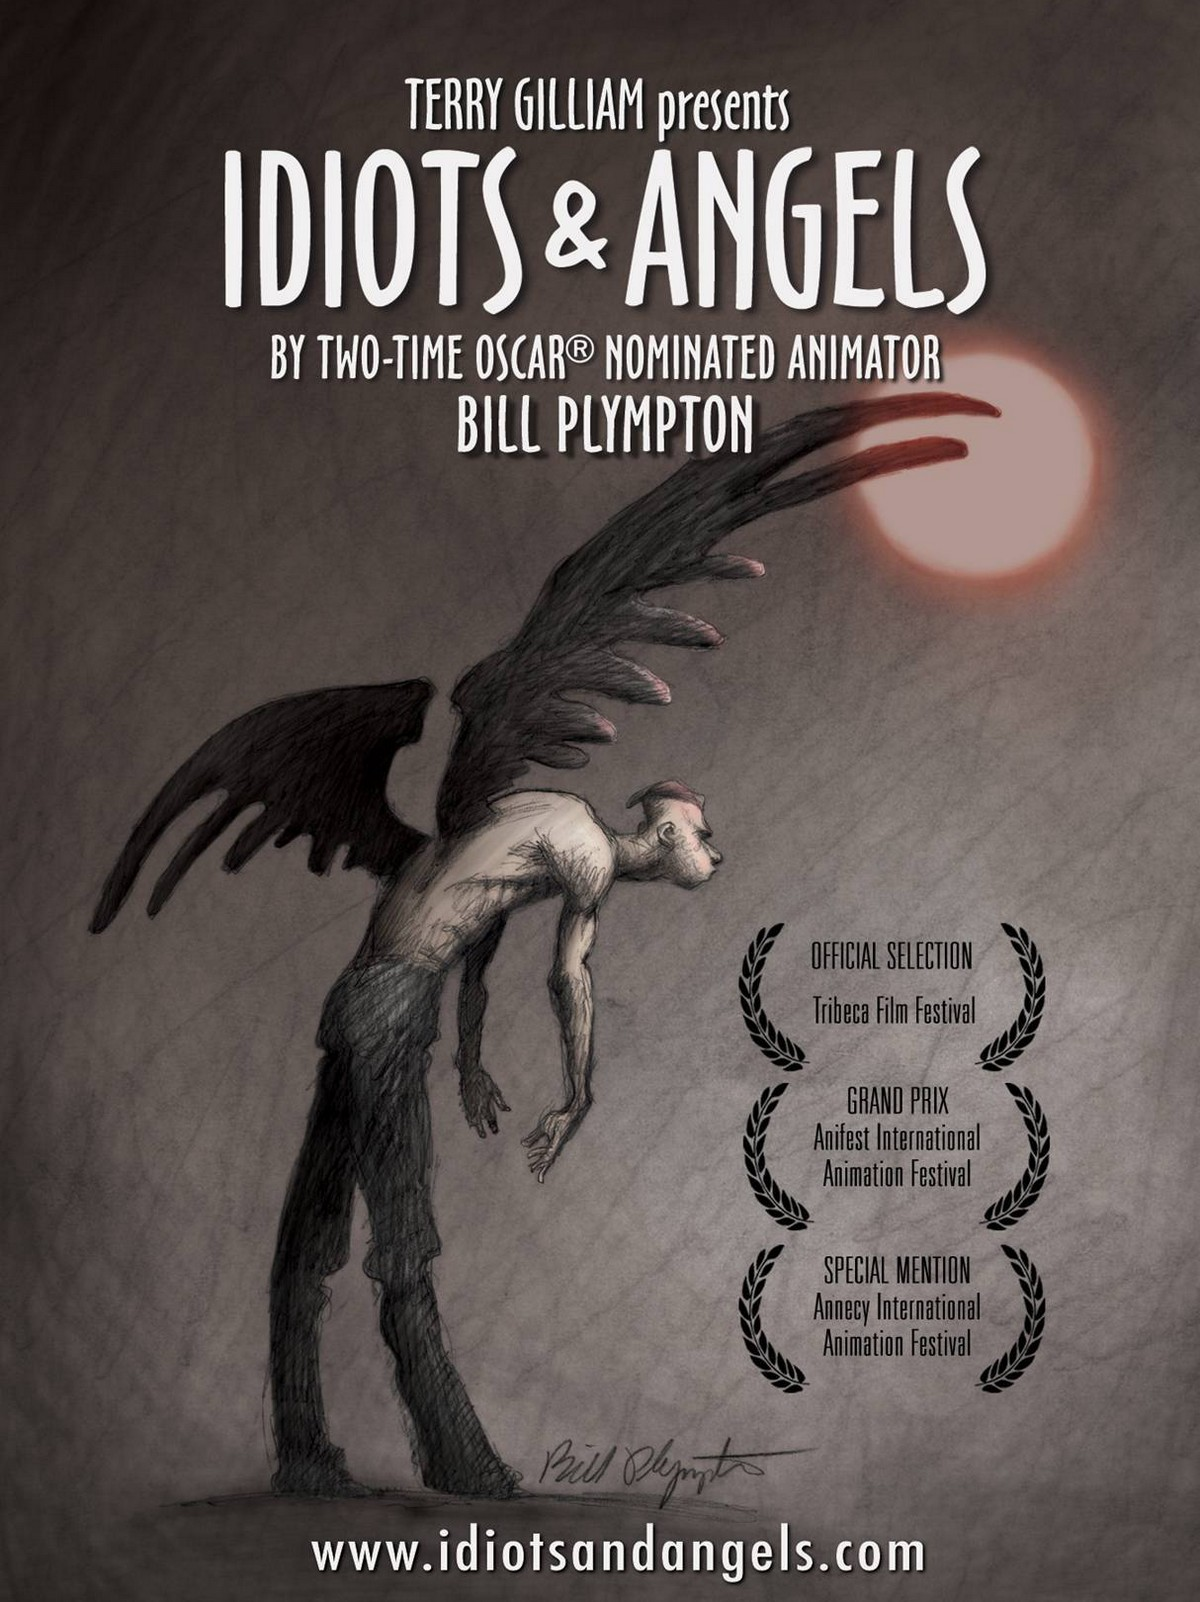 Film Fest Gent - Idiots and Angels